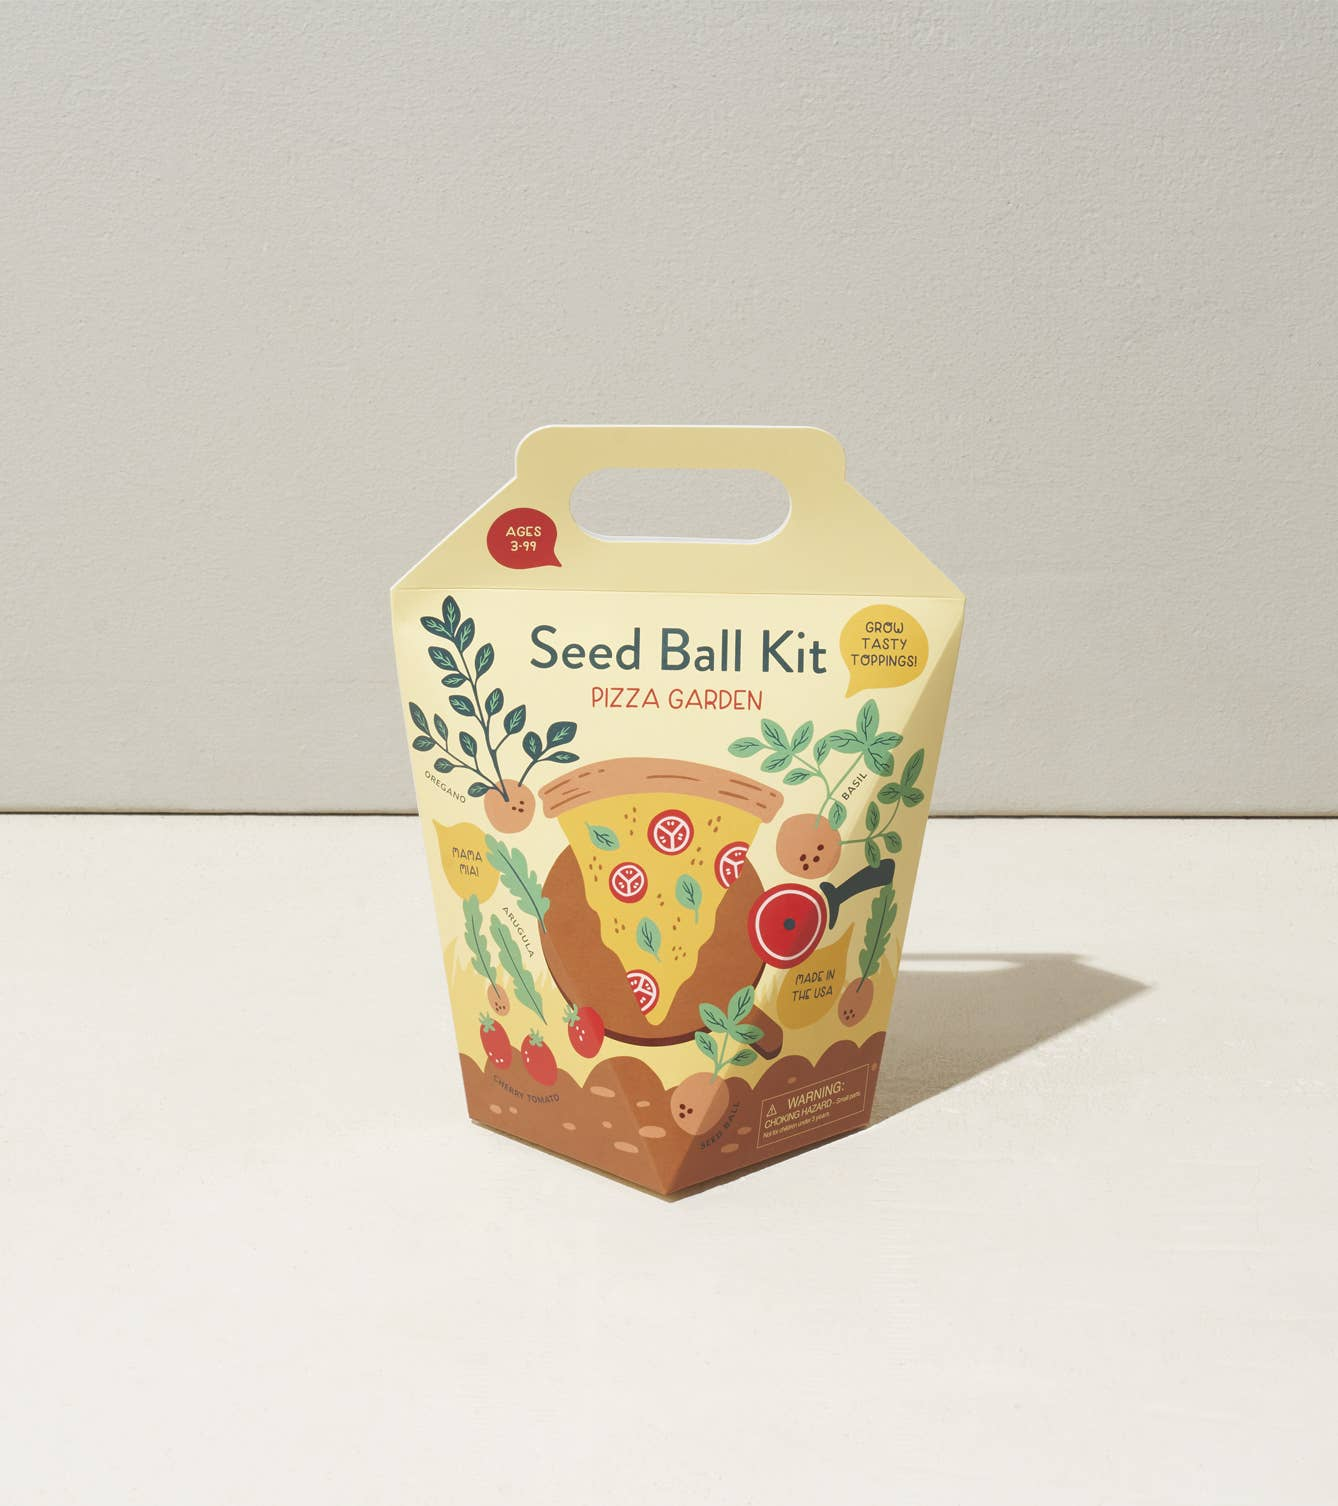 DIY Seed Ball Kit - Pizza Garden